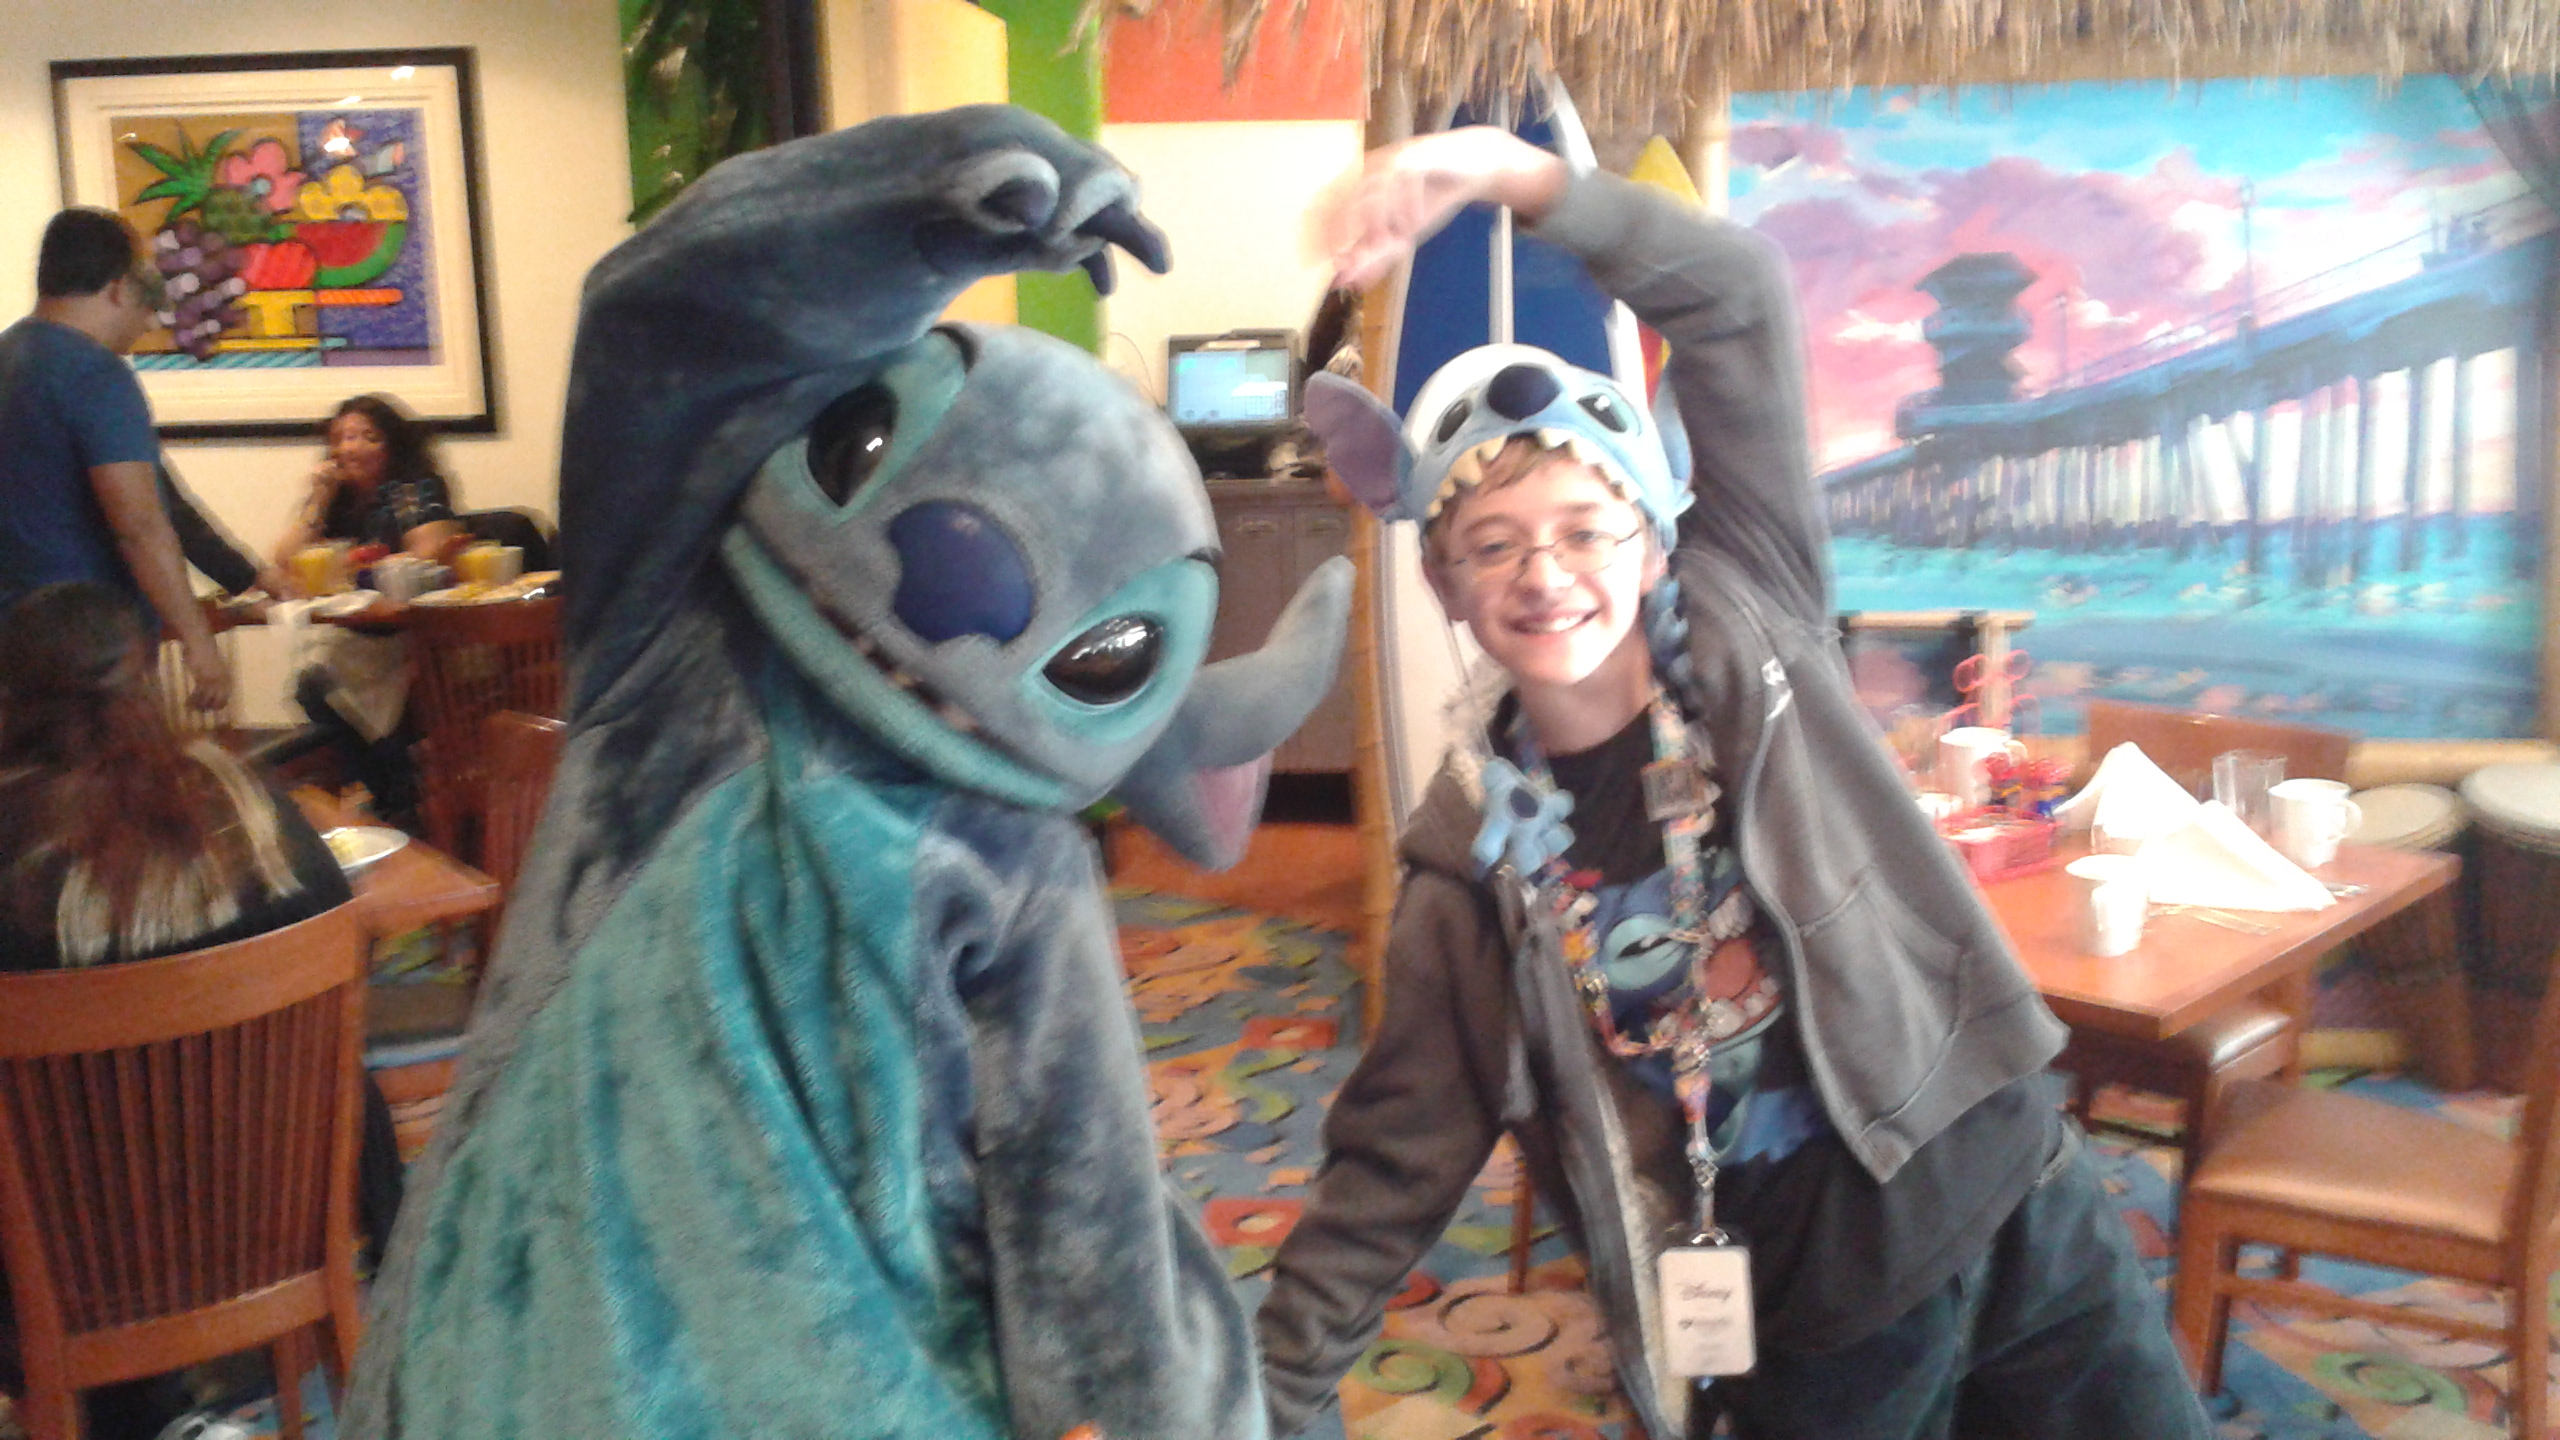 Meeting Stitch at the Mickey and Friends Surf's Up Breakfast at the Disneyland Resort